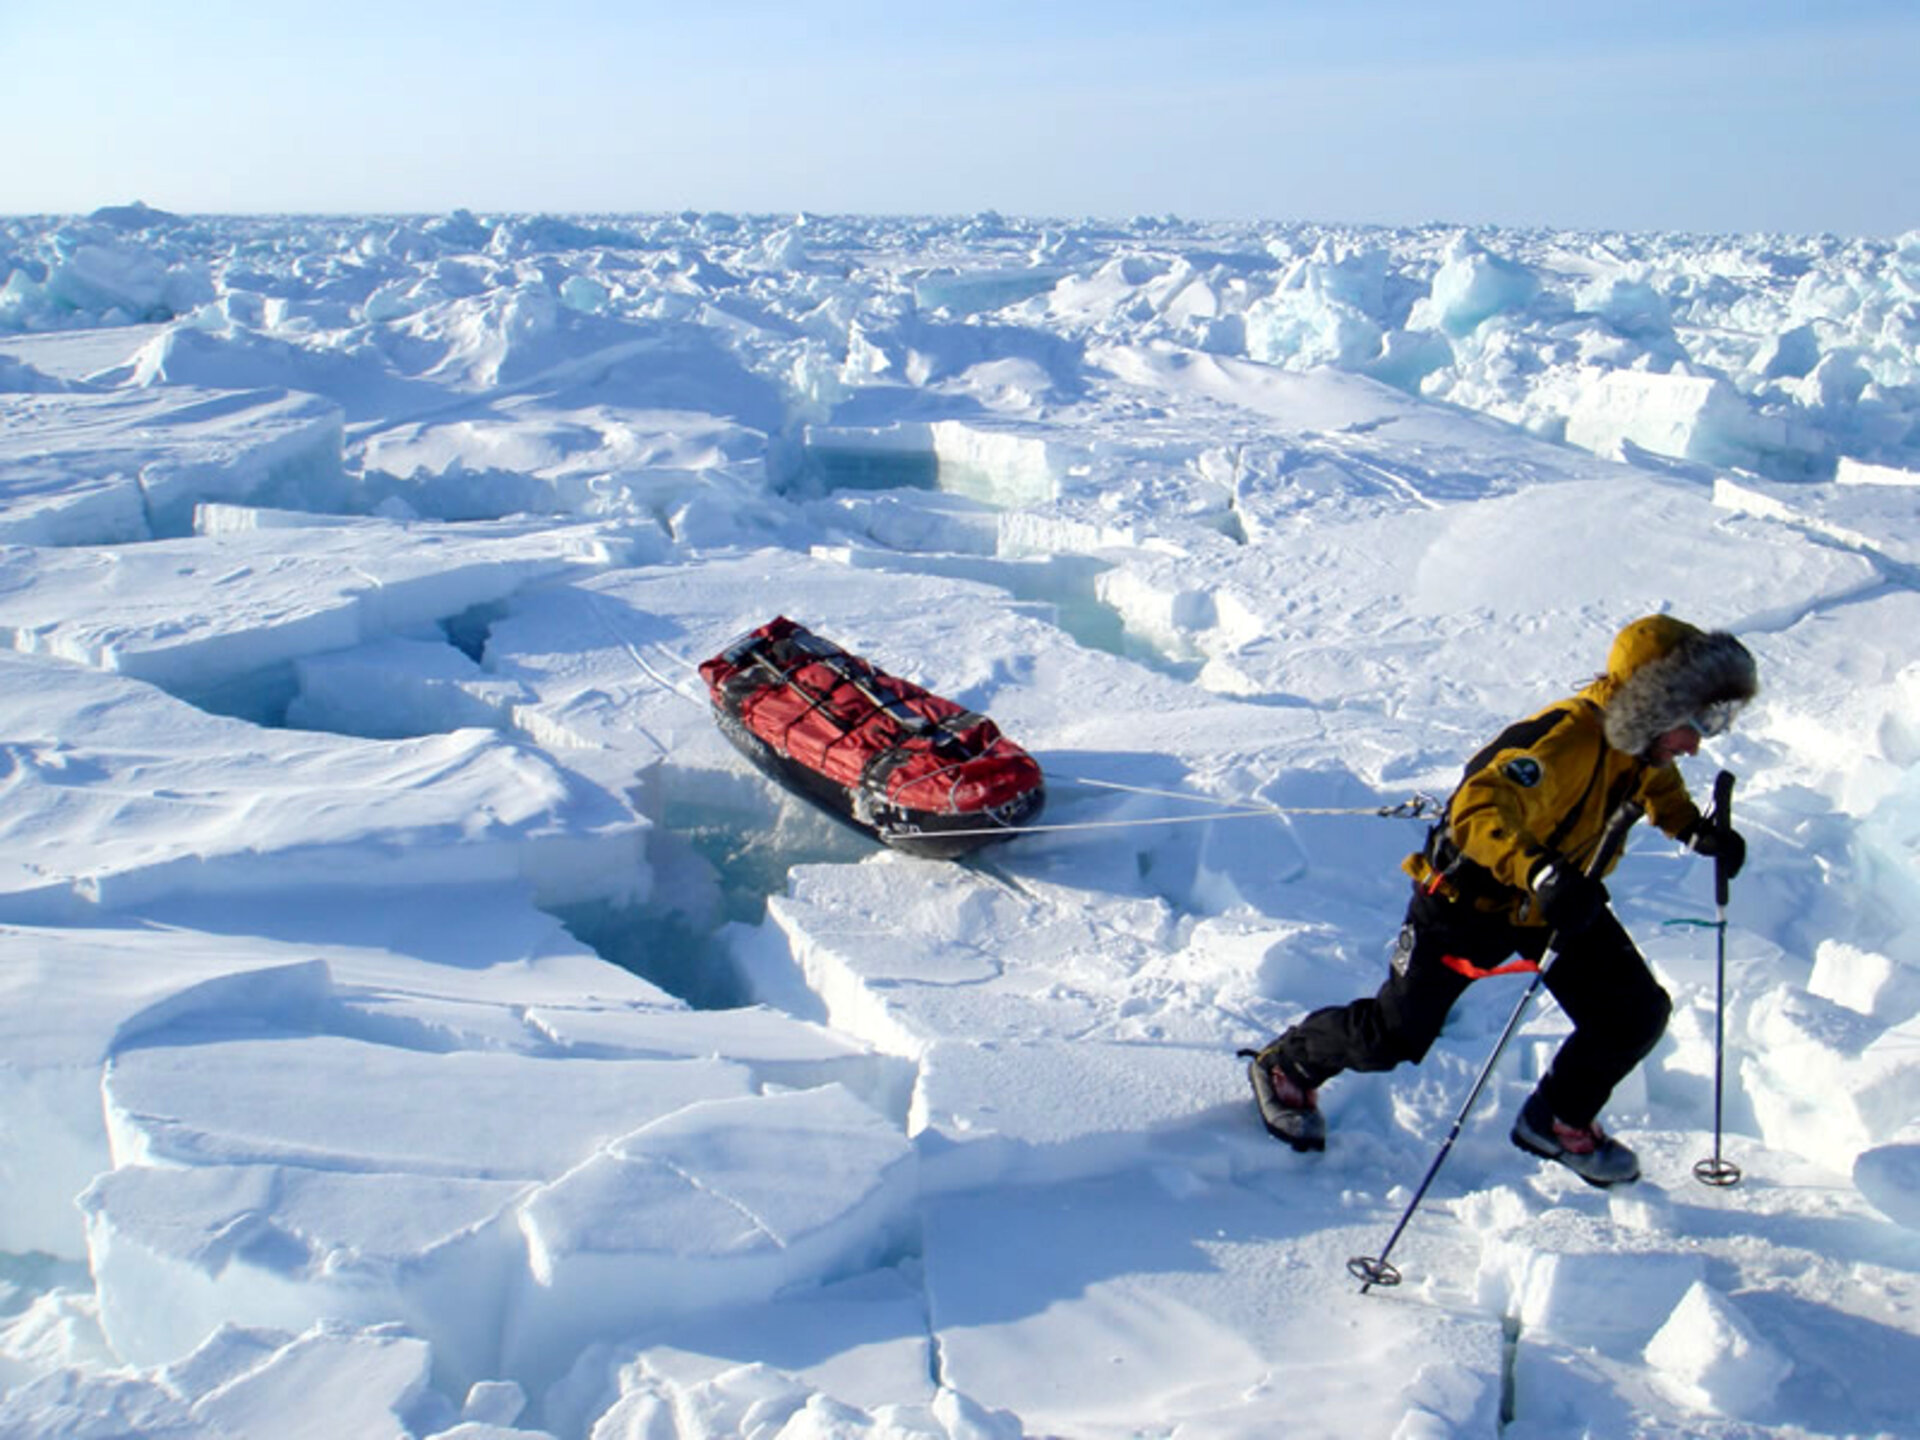 Struggling over rough sea-ice during the Arctic Arc expedition